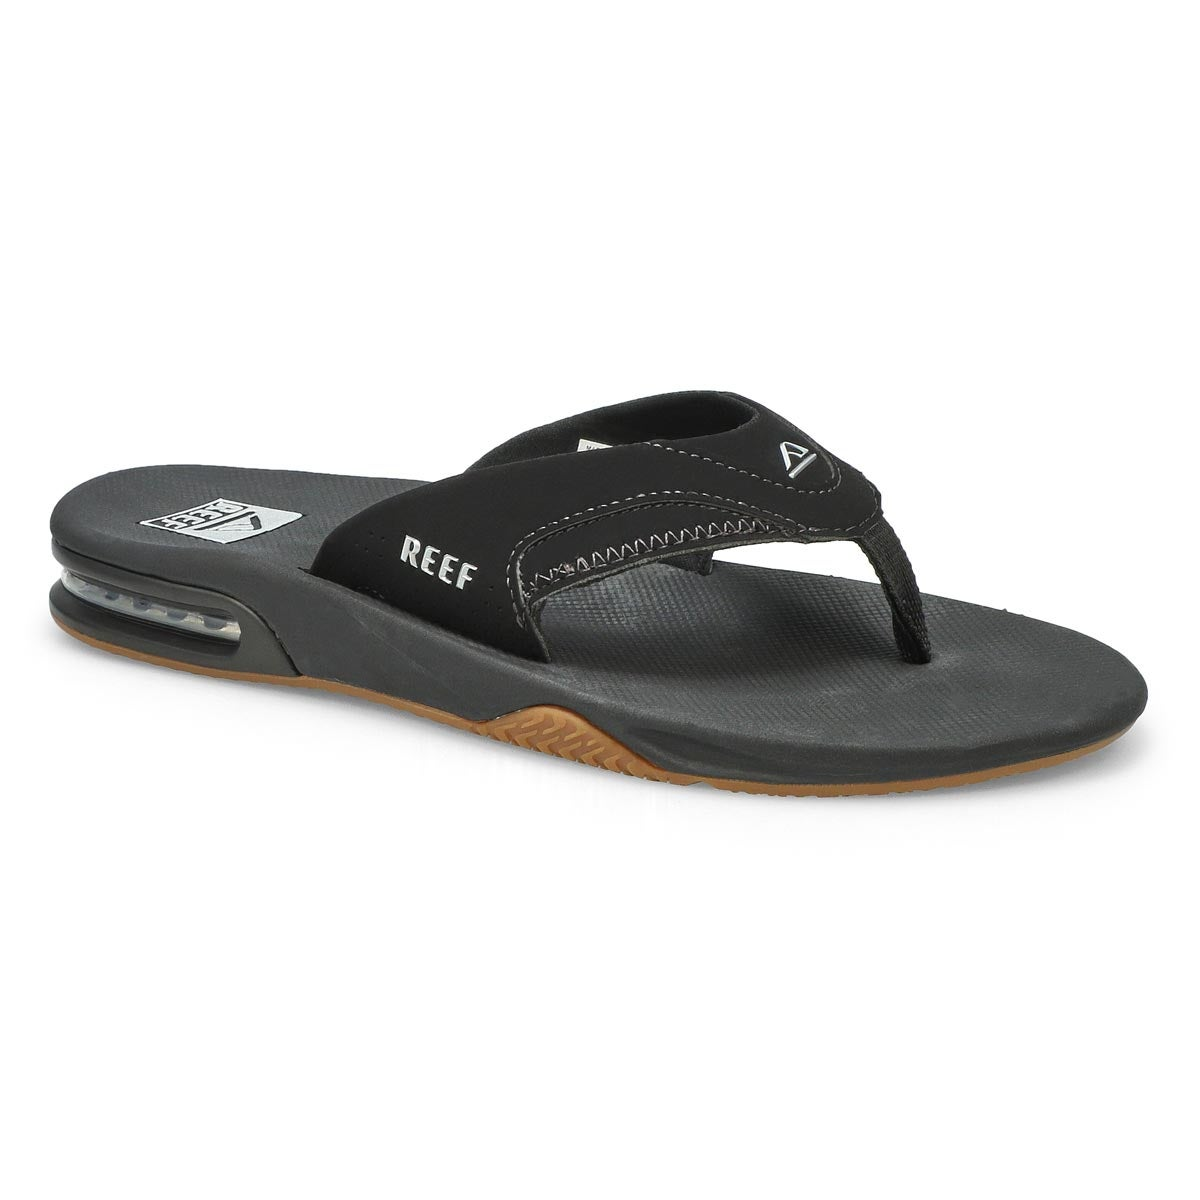 Men's FANNING black/silver thong sandals